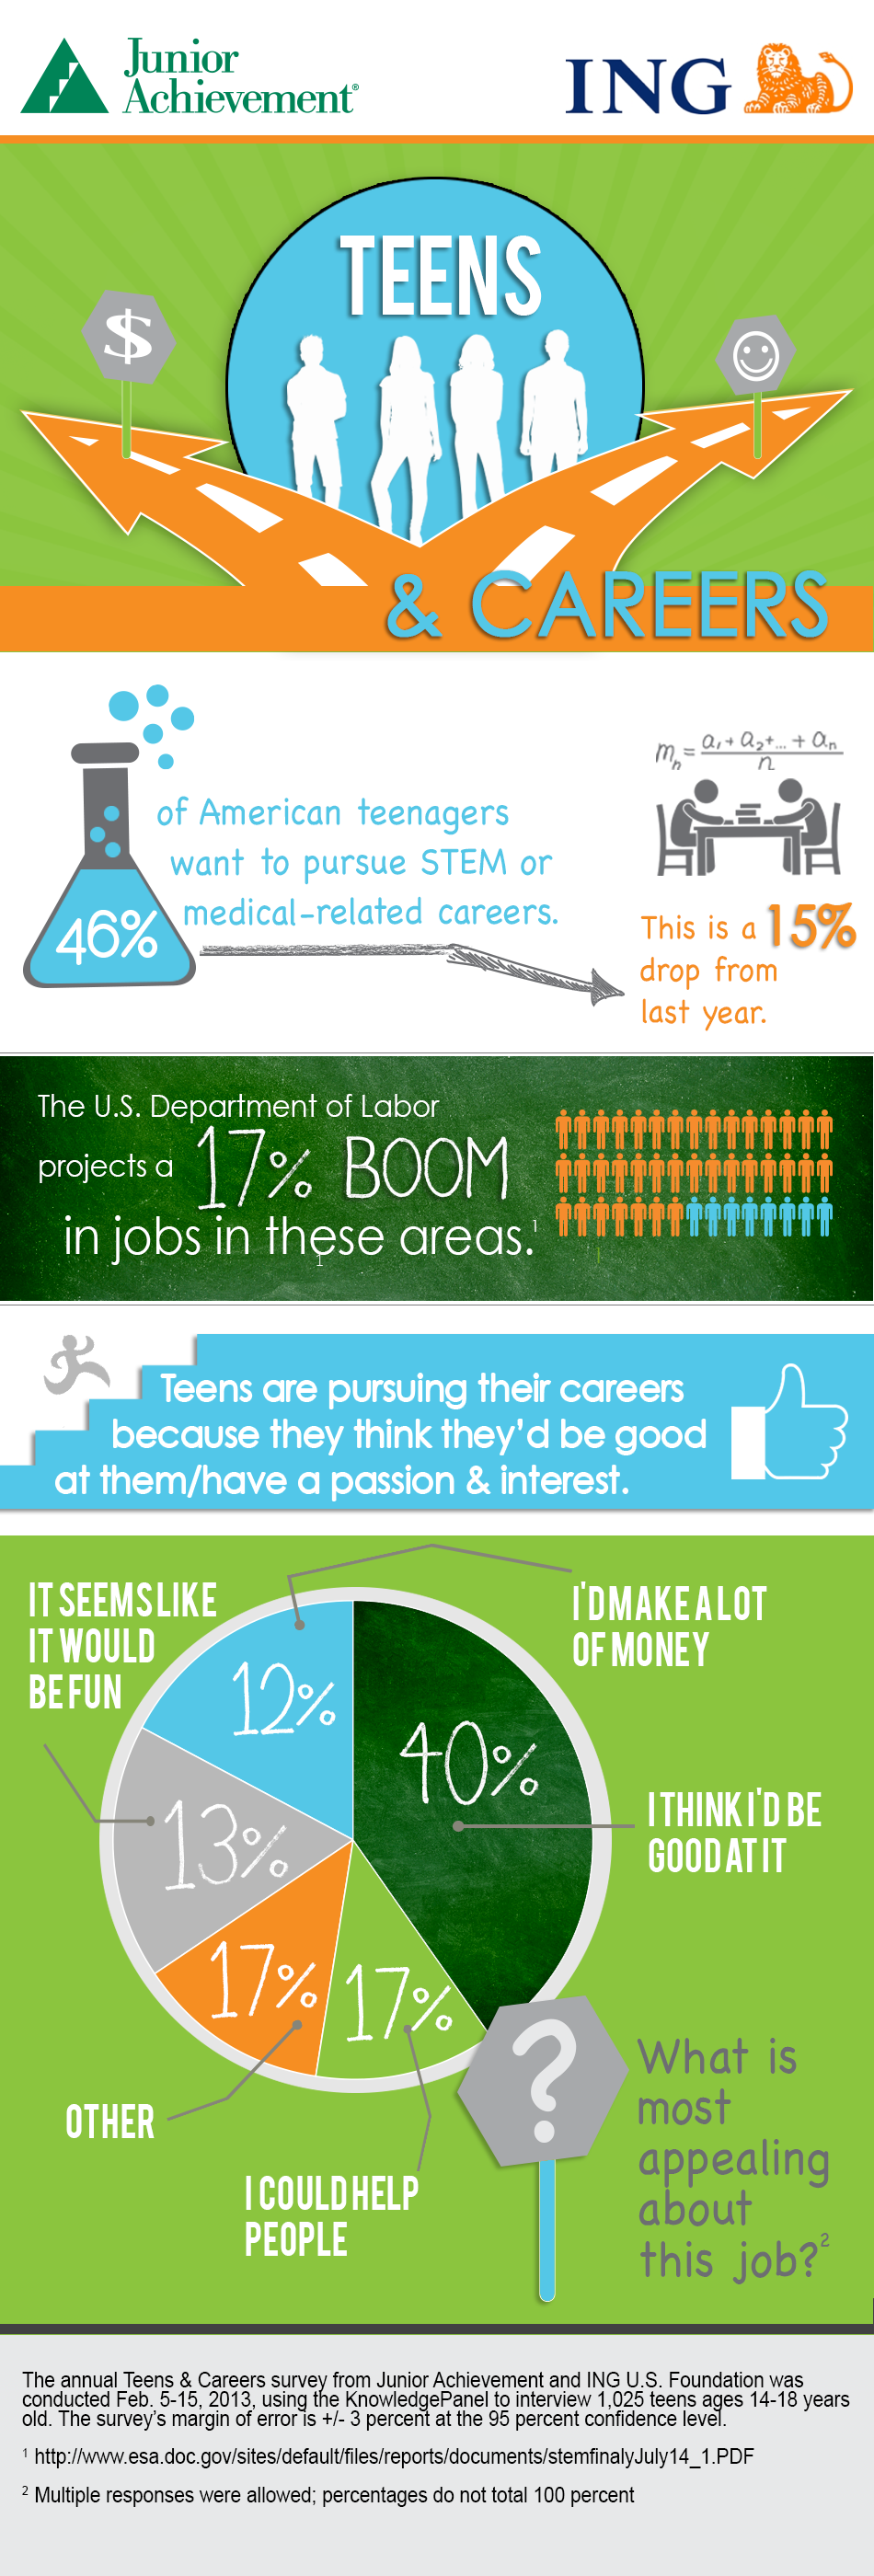 15% decline in teens interested in stem medical careers about ing u s